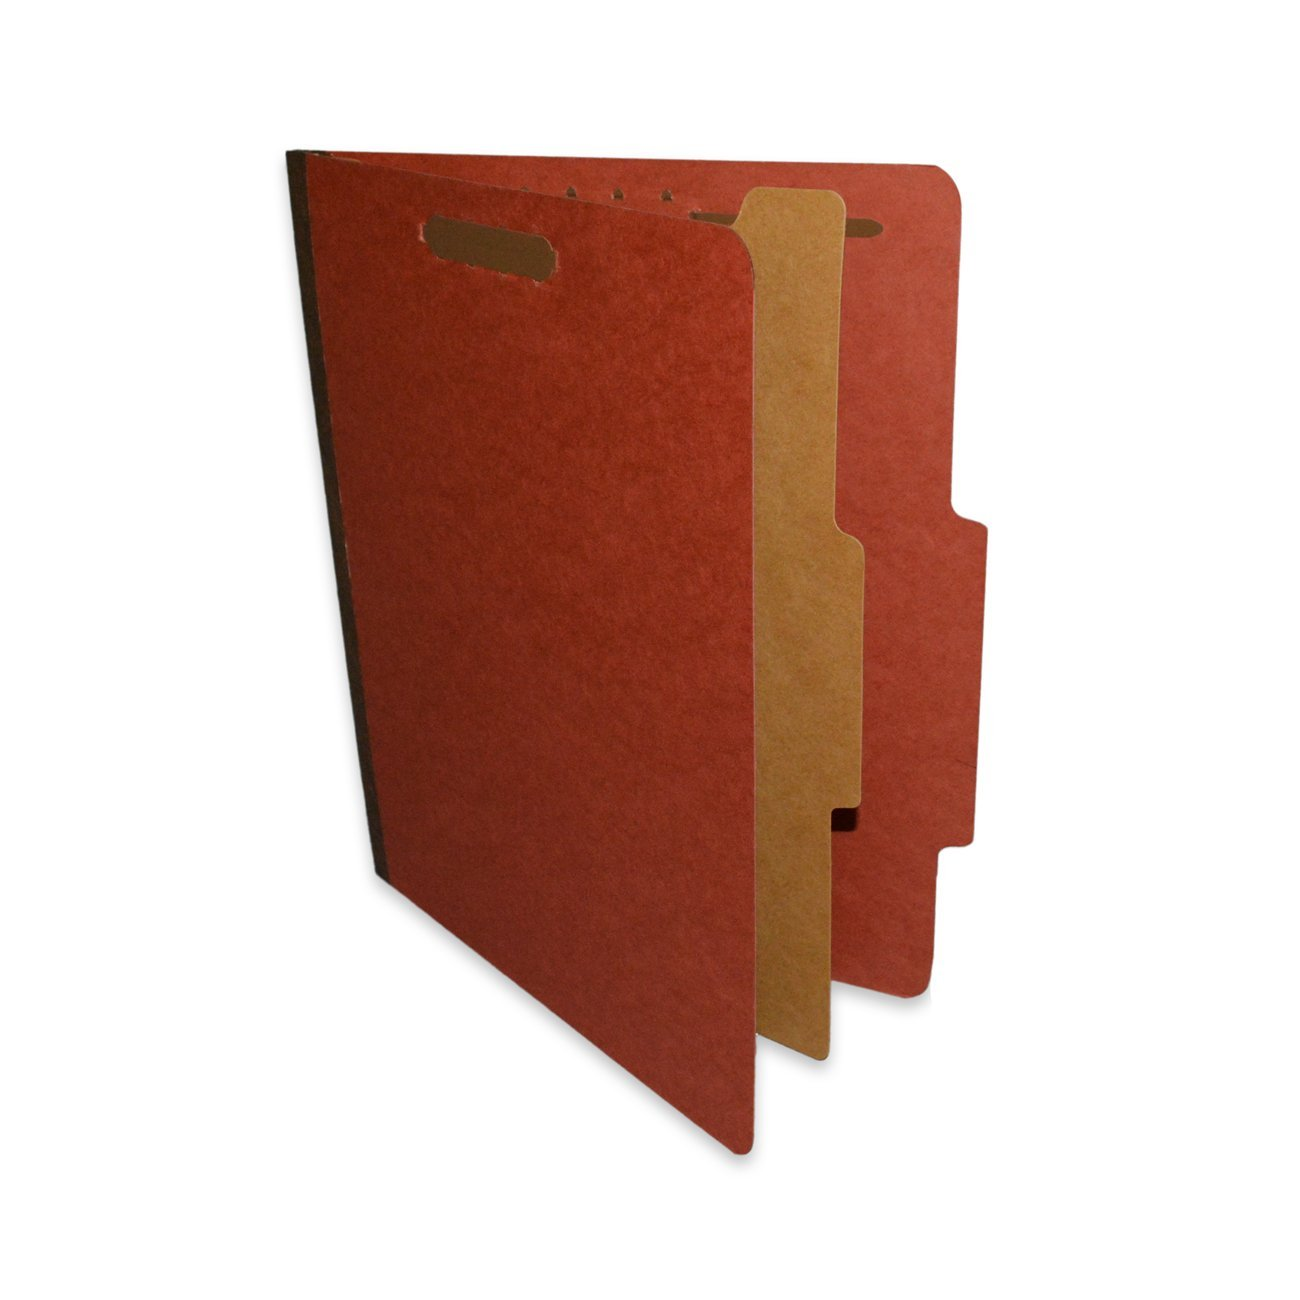 "ALL-STATE LEGAL Pressboard Classification File Folder, 1 Divider, 1 1/2"" Expansion, Letter Size, Executive Red, 20 per Box"